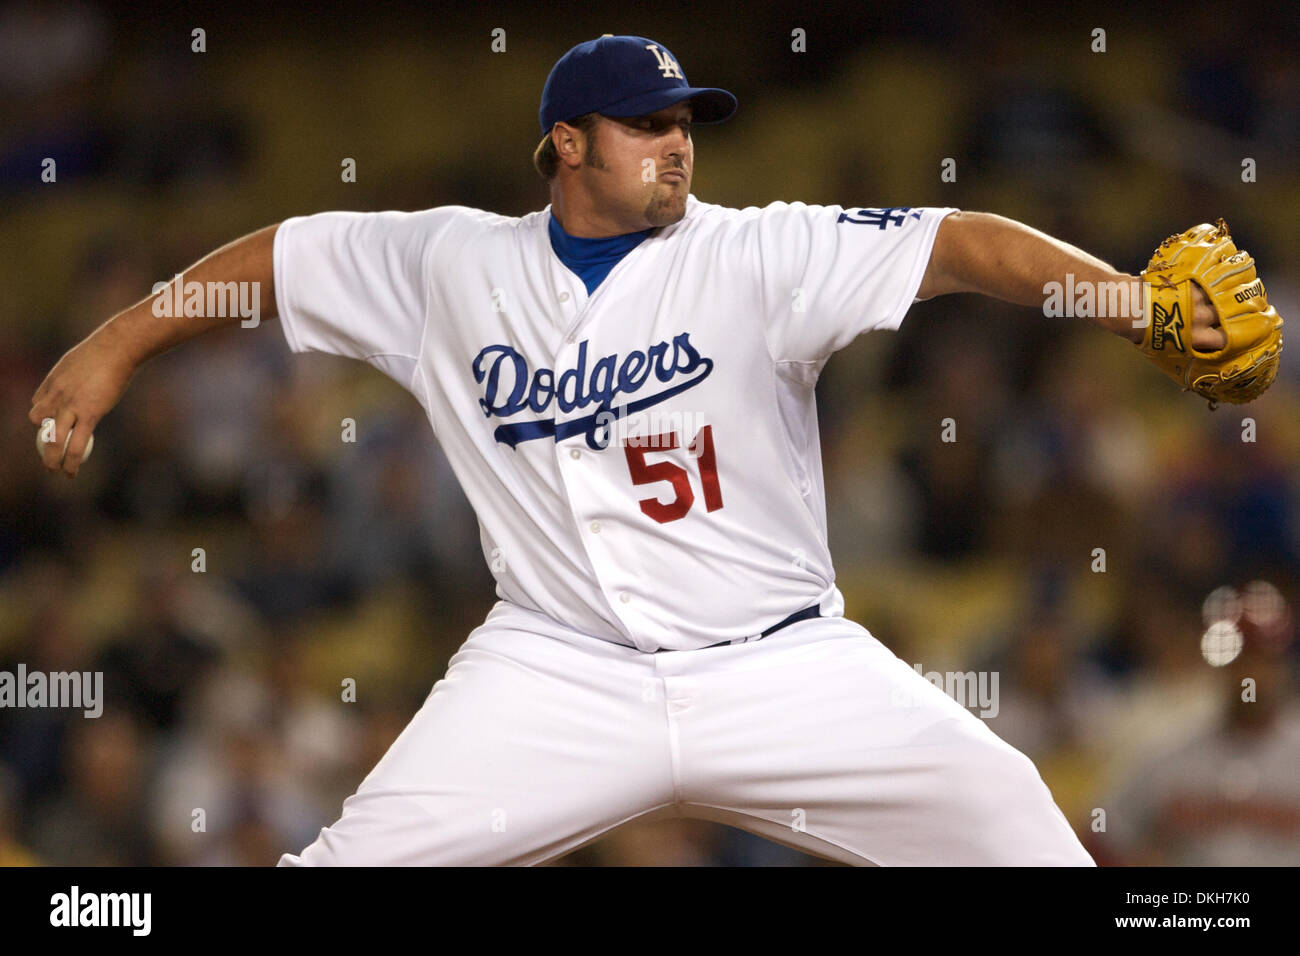 Los Angeles Dodger Relief Pitcher Jonathan Broxton earned the save and was one of four Dodger pitchers that combined to pitch a shut out versus the Arizona Diamondbacks (Credit Image: © Tony Leon/Southcreek Global/ZUMApress.com) - Stock Image